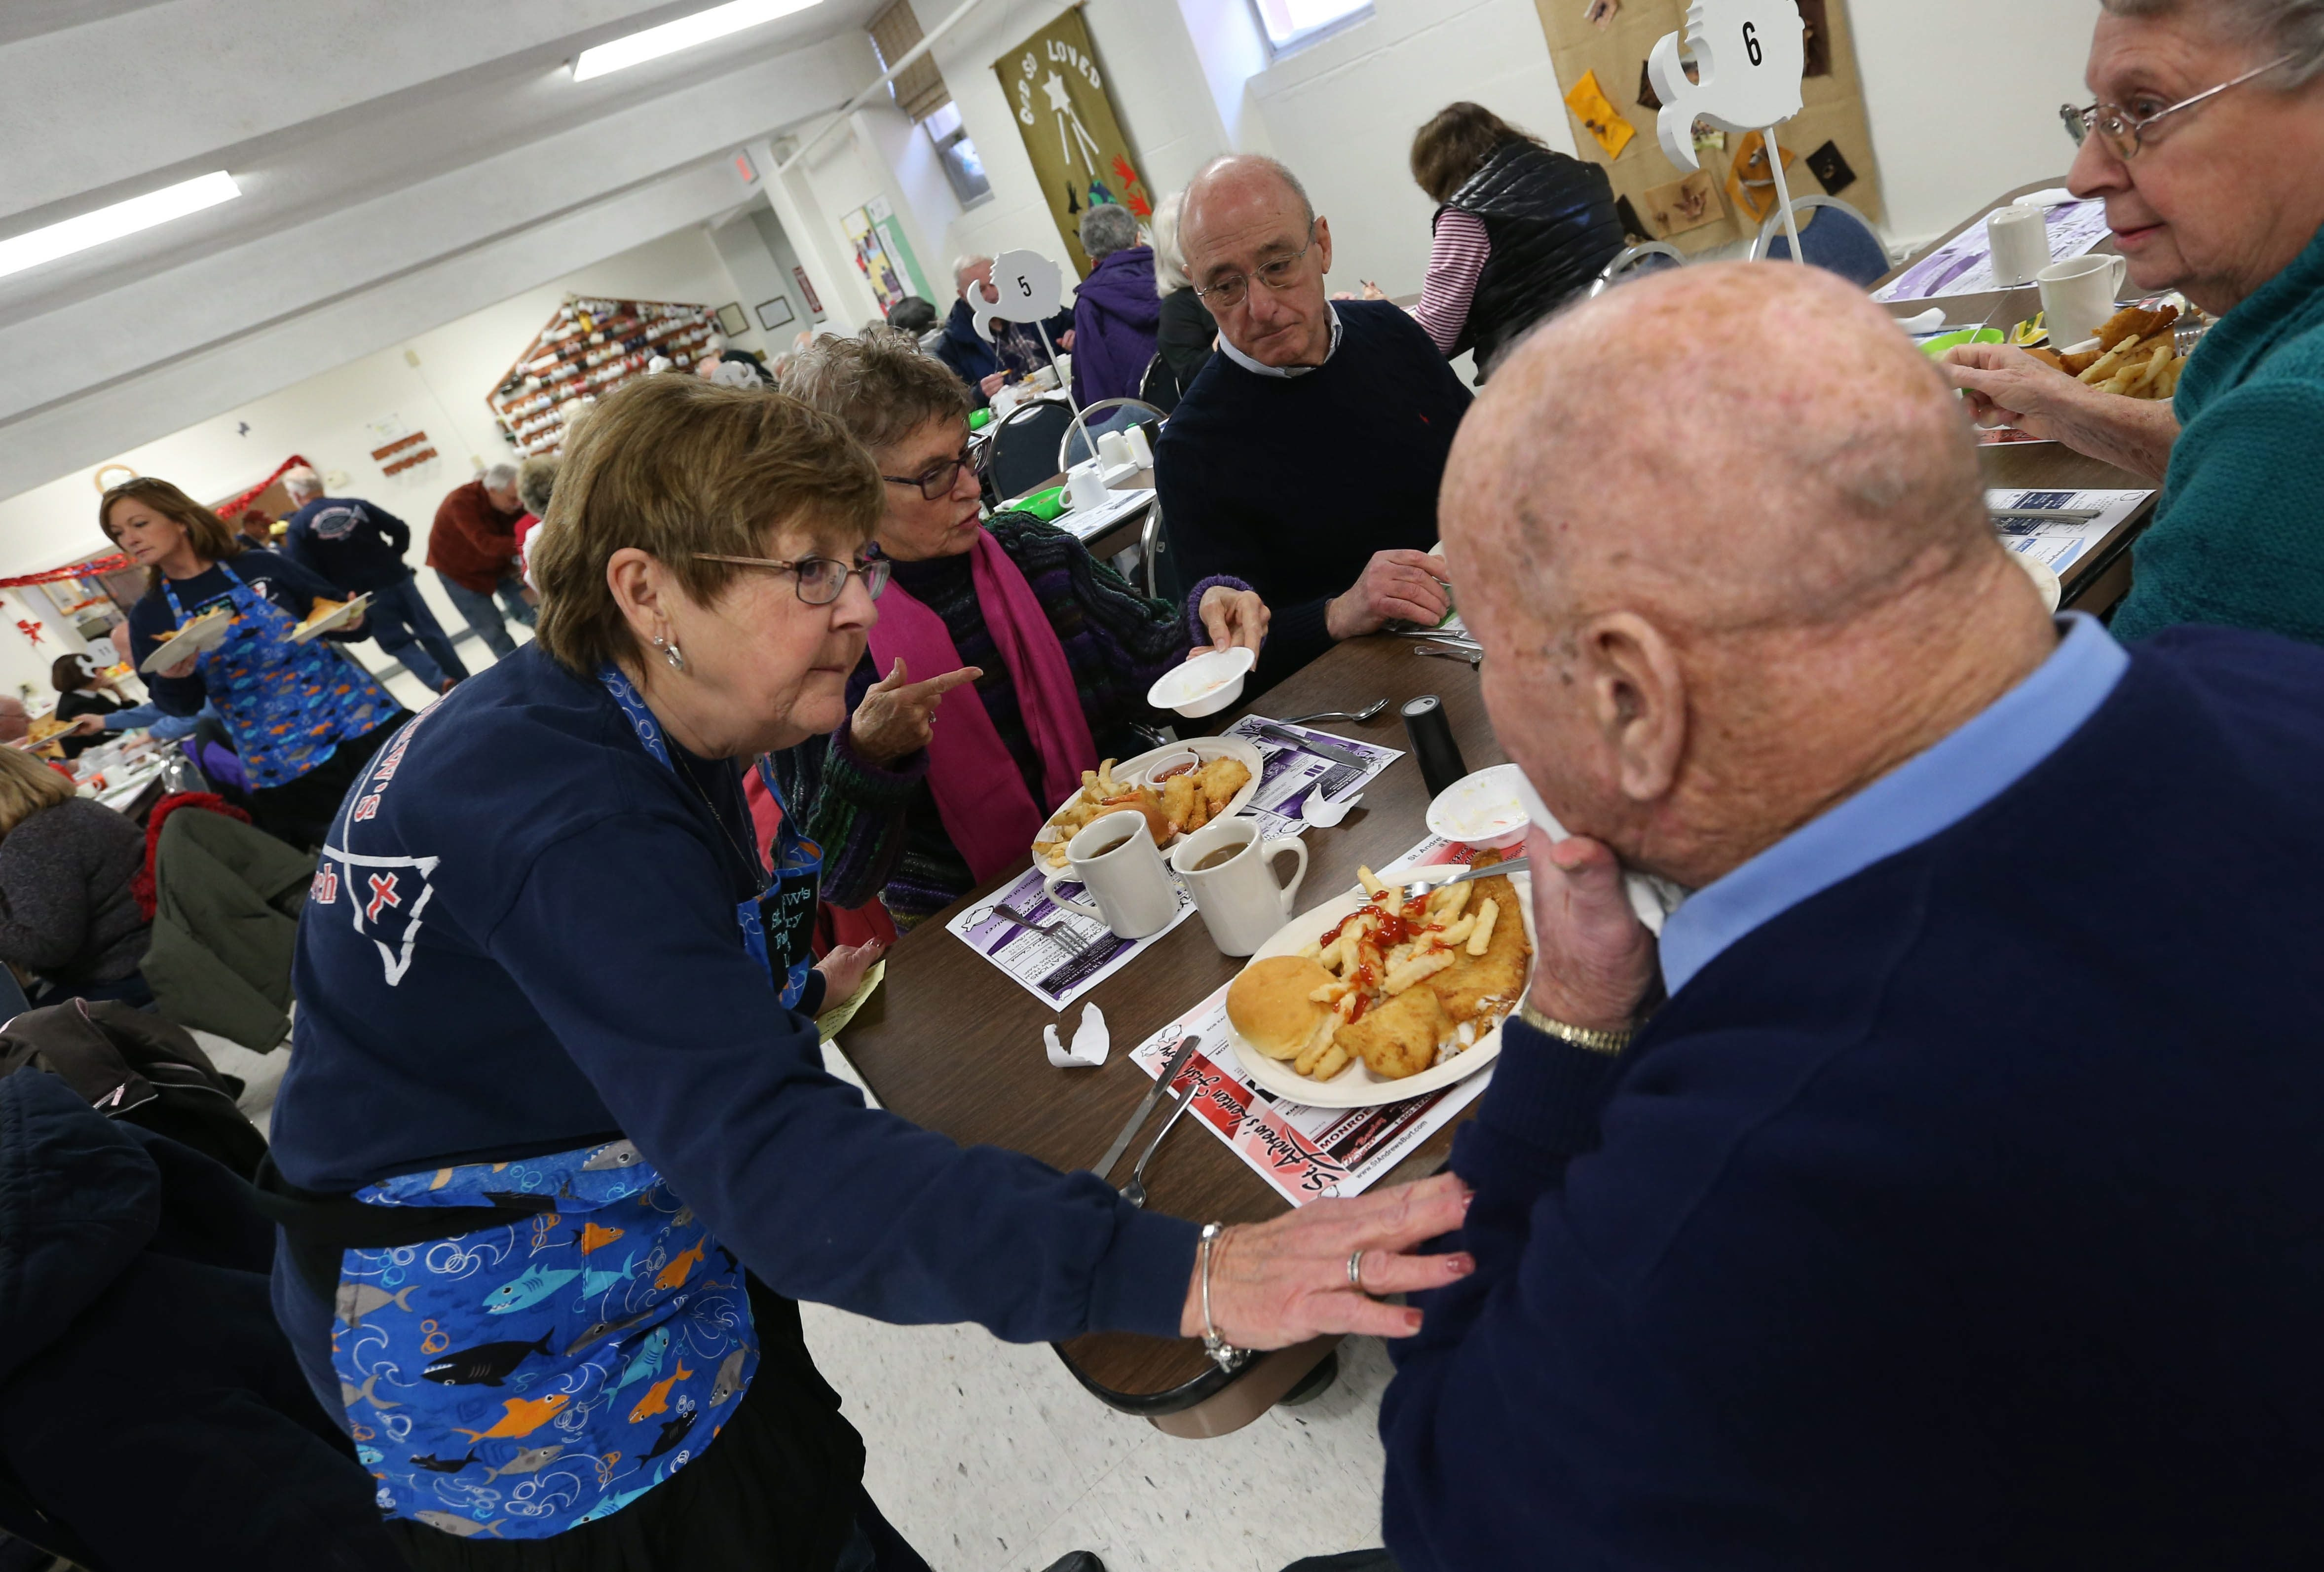 """Fish frys like this one at St. Andrew's Episcopal Church in Burt can be found throughout Western New York during the Lenten season and beyond.  """"You find it all across the country in Catholic  cities."""" – Andrew Golebiowski said of fish frys"""